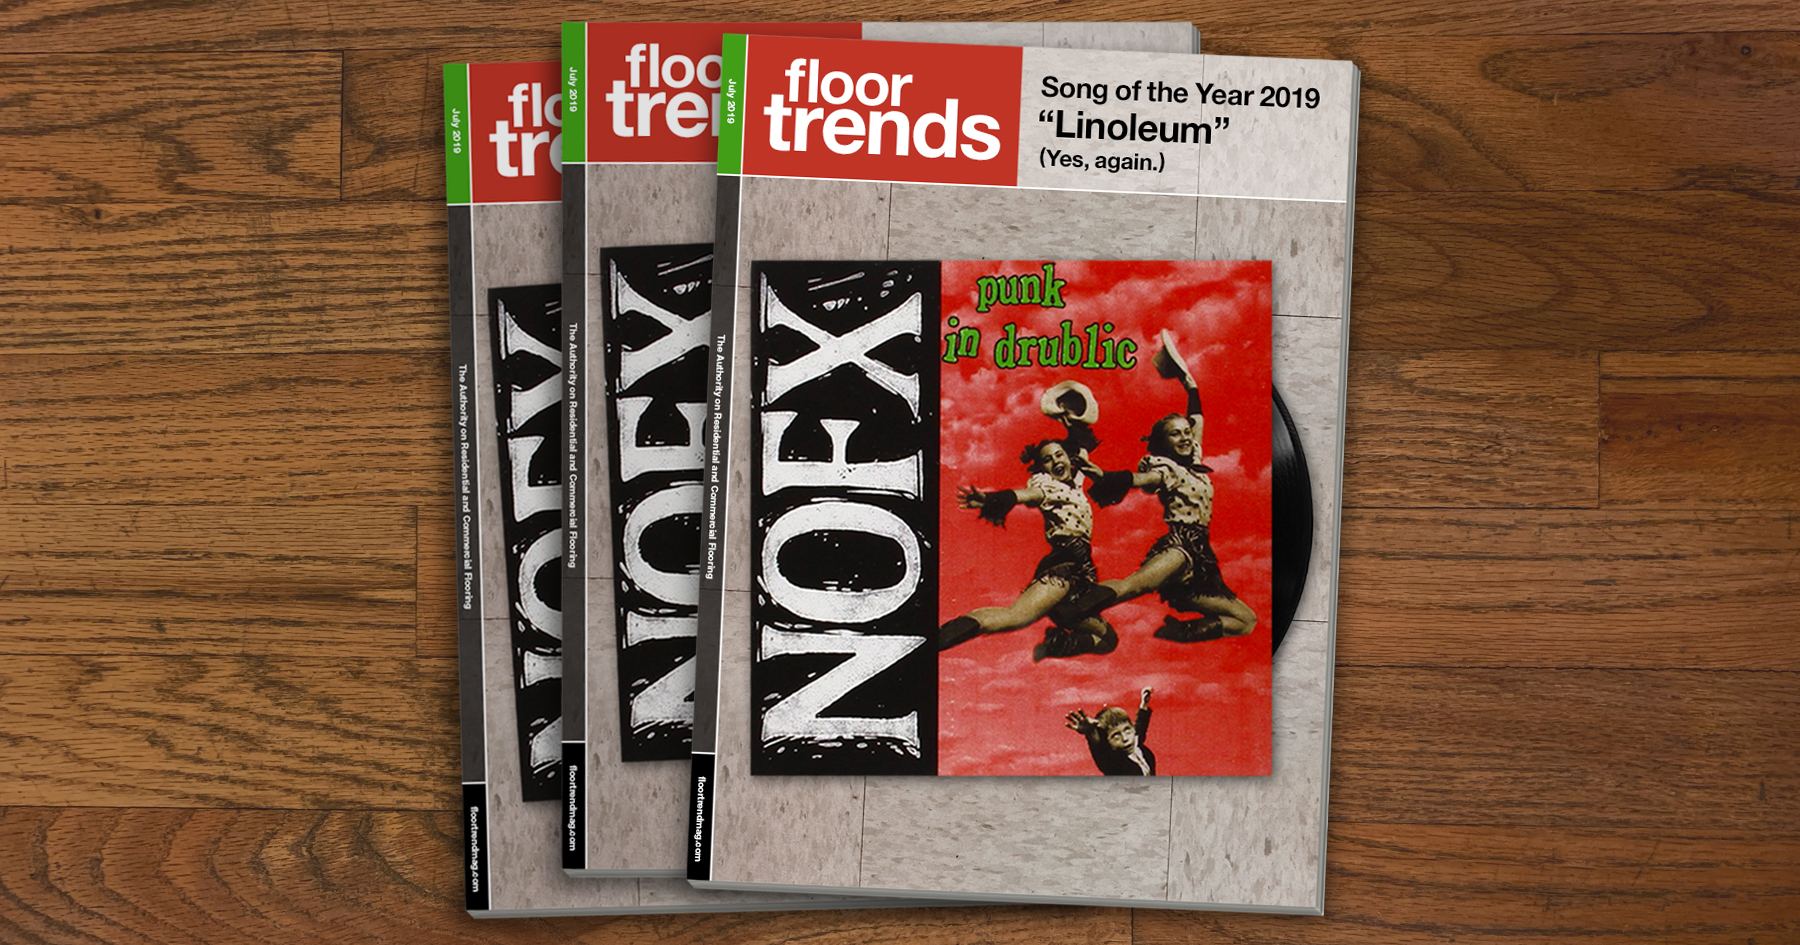 """NOFX's """"Linoleum"""" Wins 25th Consecutive """"Song of the Year"""